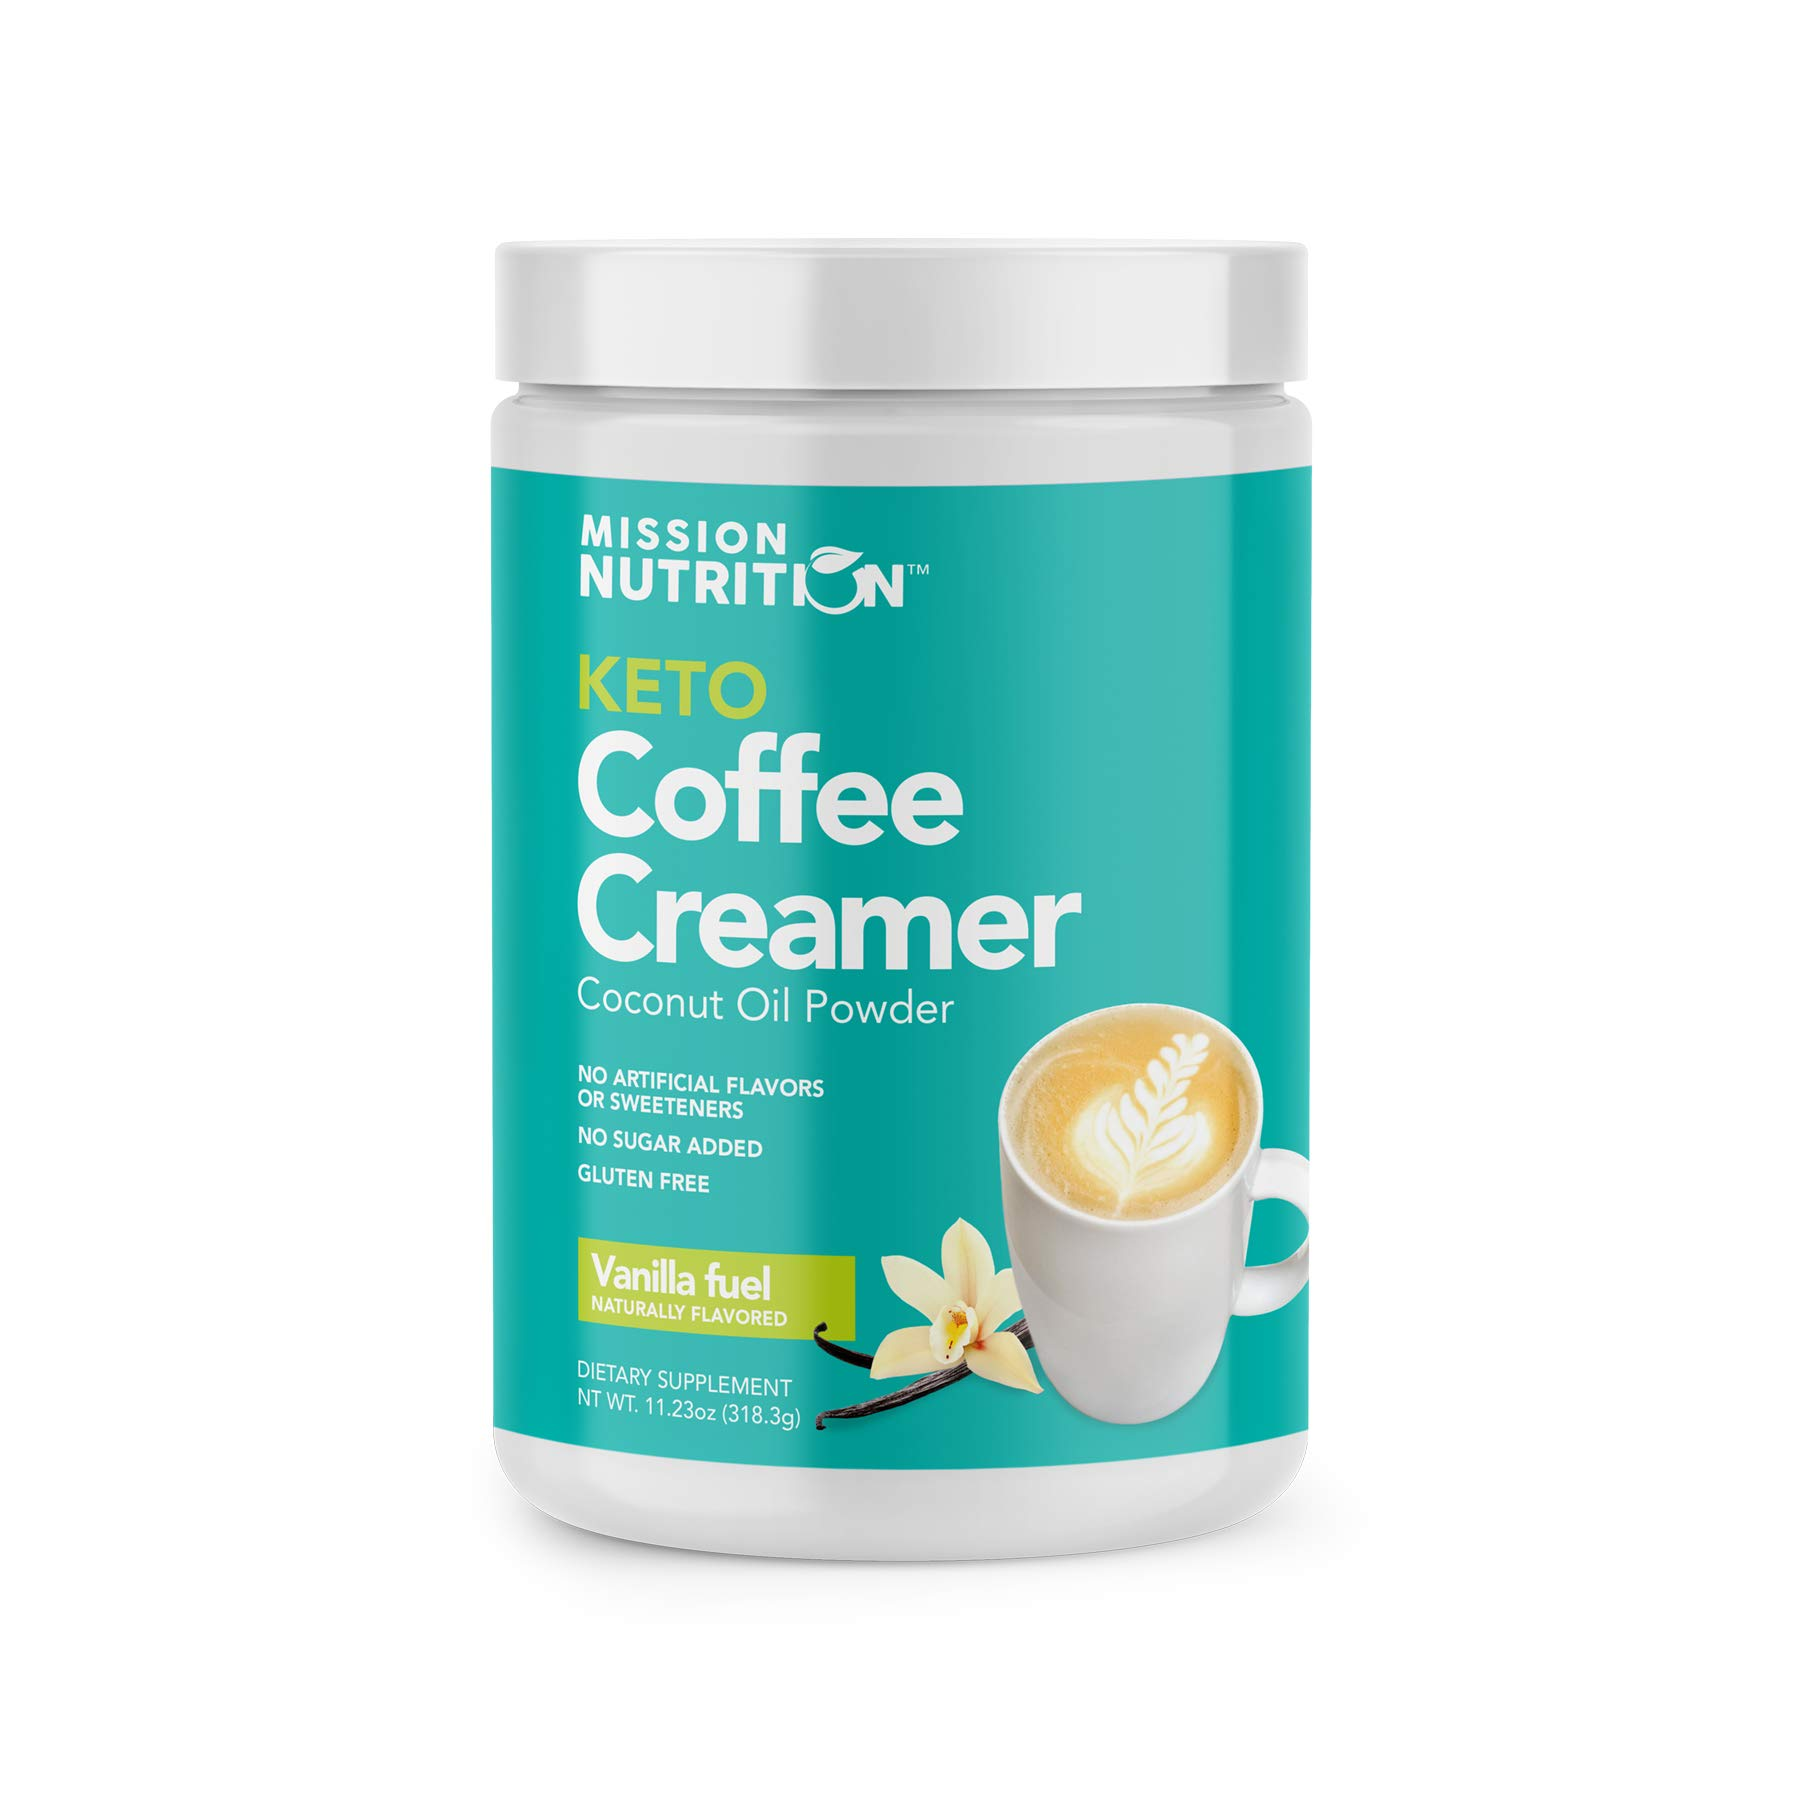 Mission Nutrition Keto Coffee Creamer - Low Carb (Zero Net), No Added Sugar, Ketogenic, Gluten Free - Made with Coconut Oil Powder Sweetened with Stevia - 30 Servings (Vanilla)